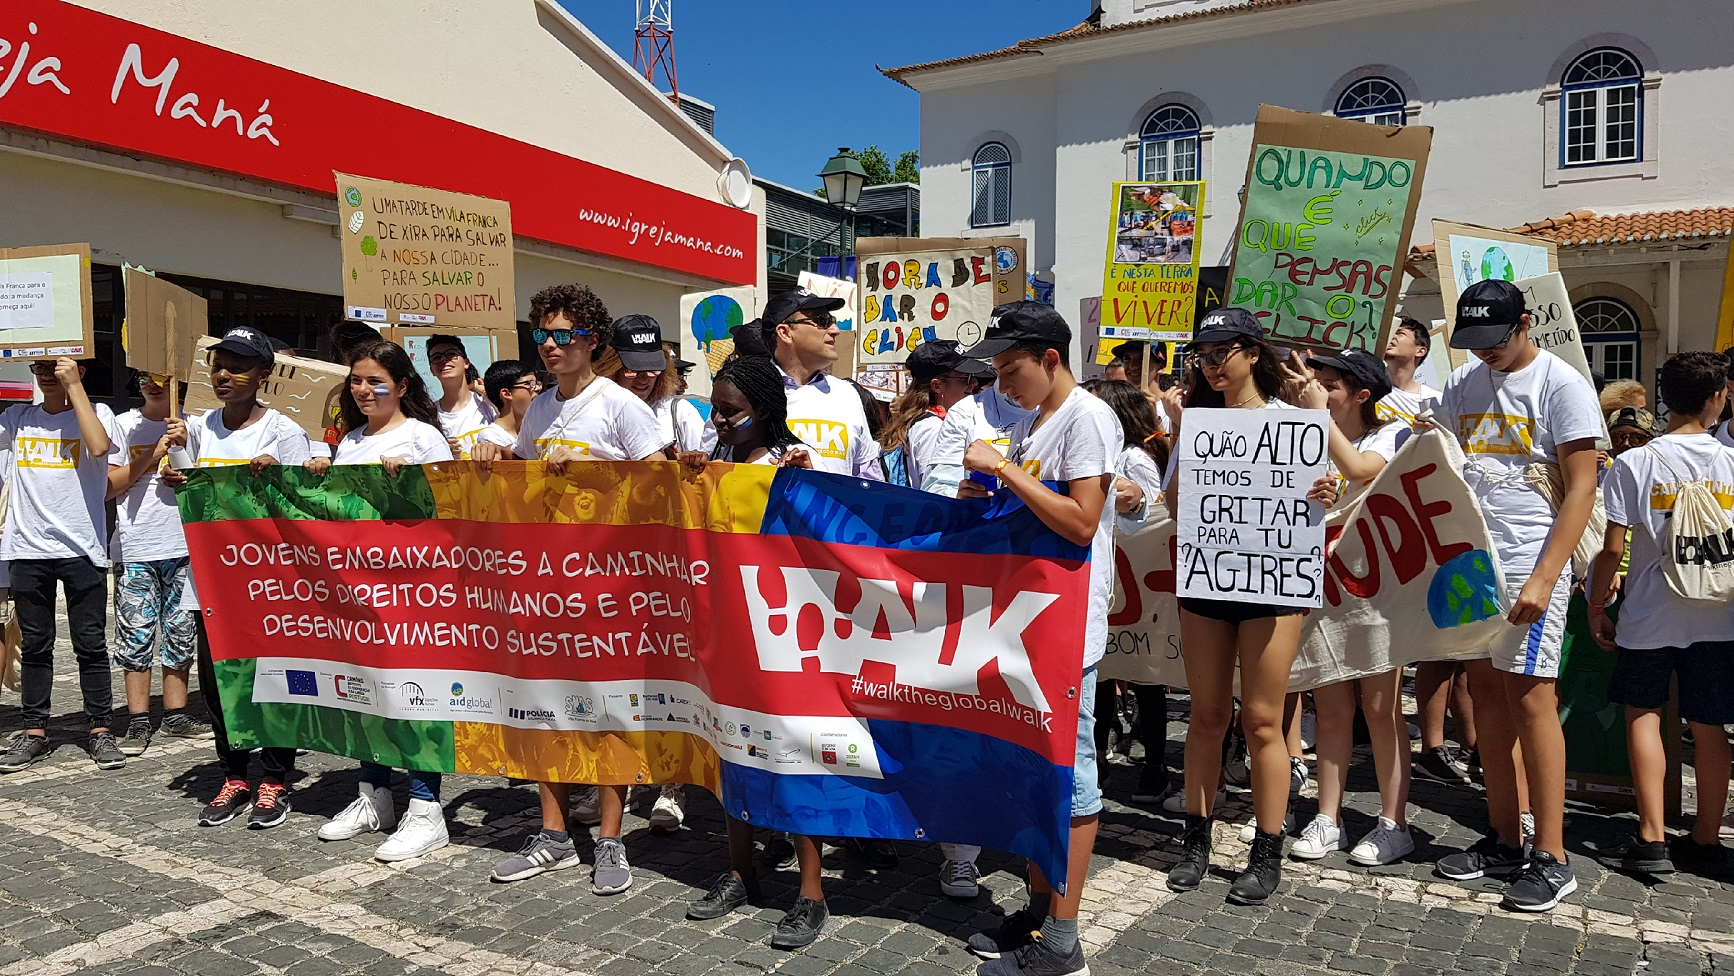 Global Walk for the Sustainable Development Goals - Students from Vila Franca de Xira work on environmental best practices